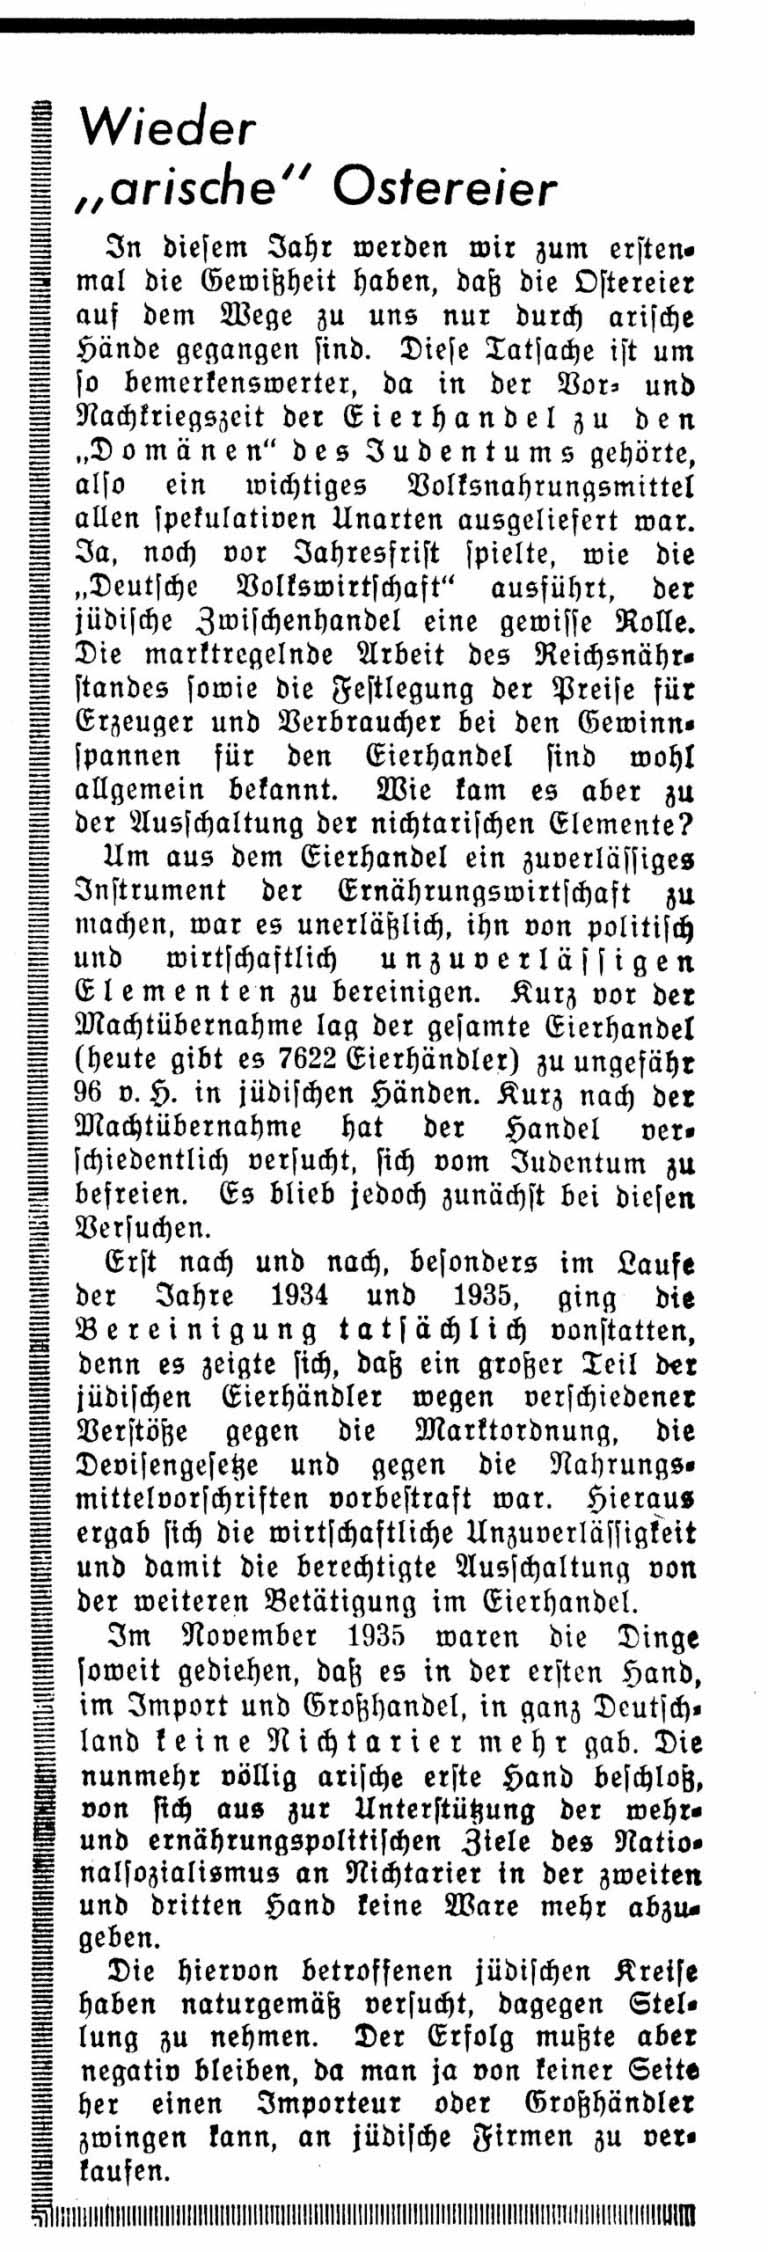 """""""Aryan Easter Eggs Back Again"""" Official harassment and boycott actions by non-Jewish competitors force Jews to close their businesses, such as the egg trade, even before the enactment of laws officially excluding them from professional life. Der Angriff, April 10, 1936"""